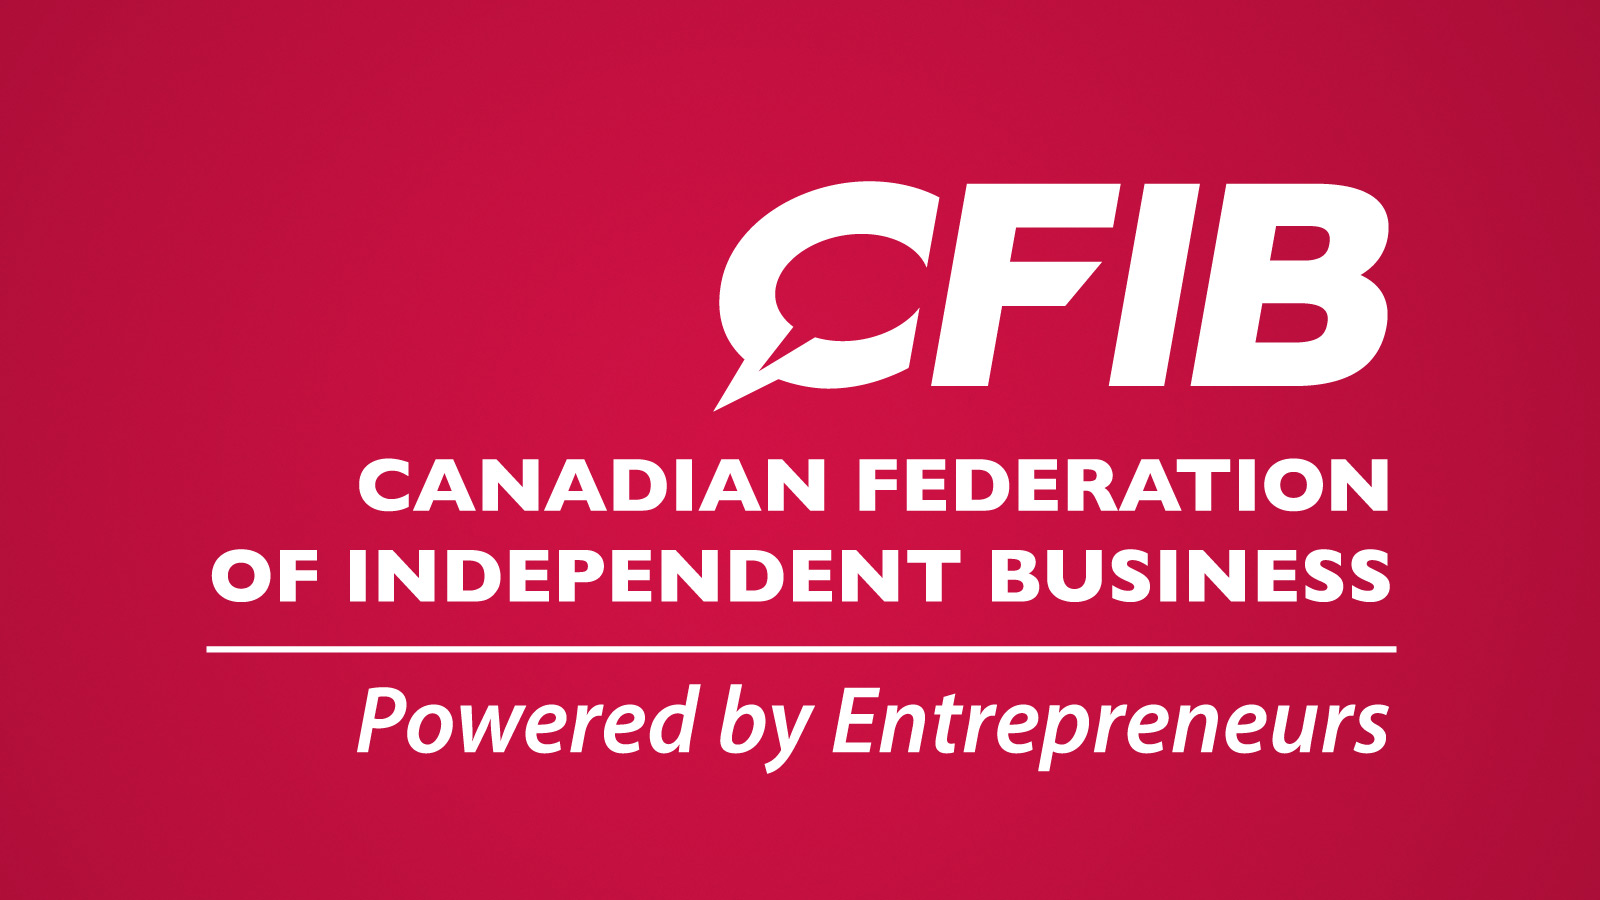 Canadian Federation of Independent Businesses